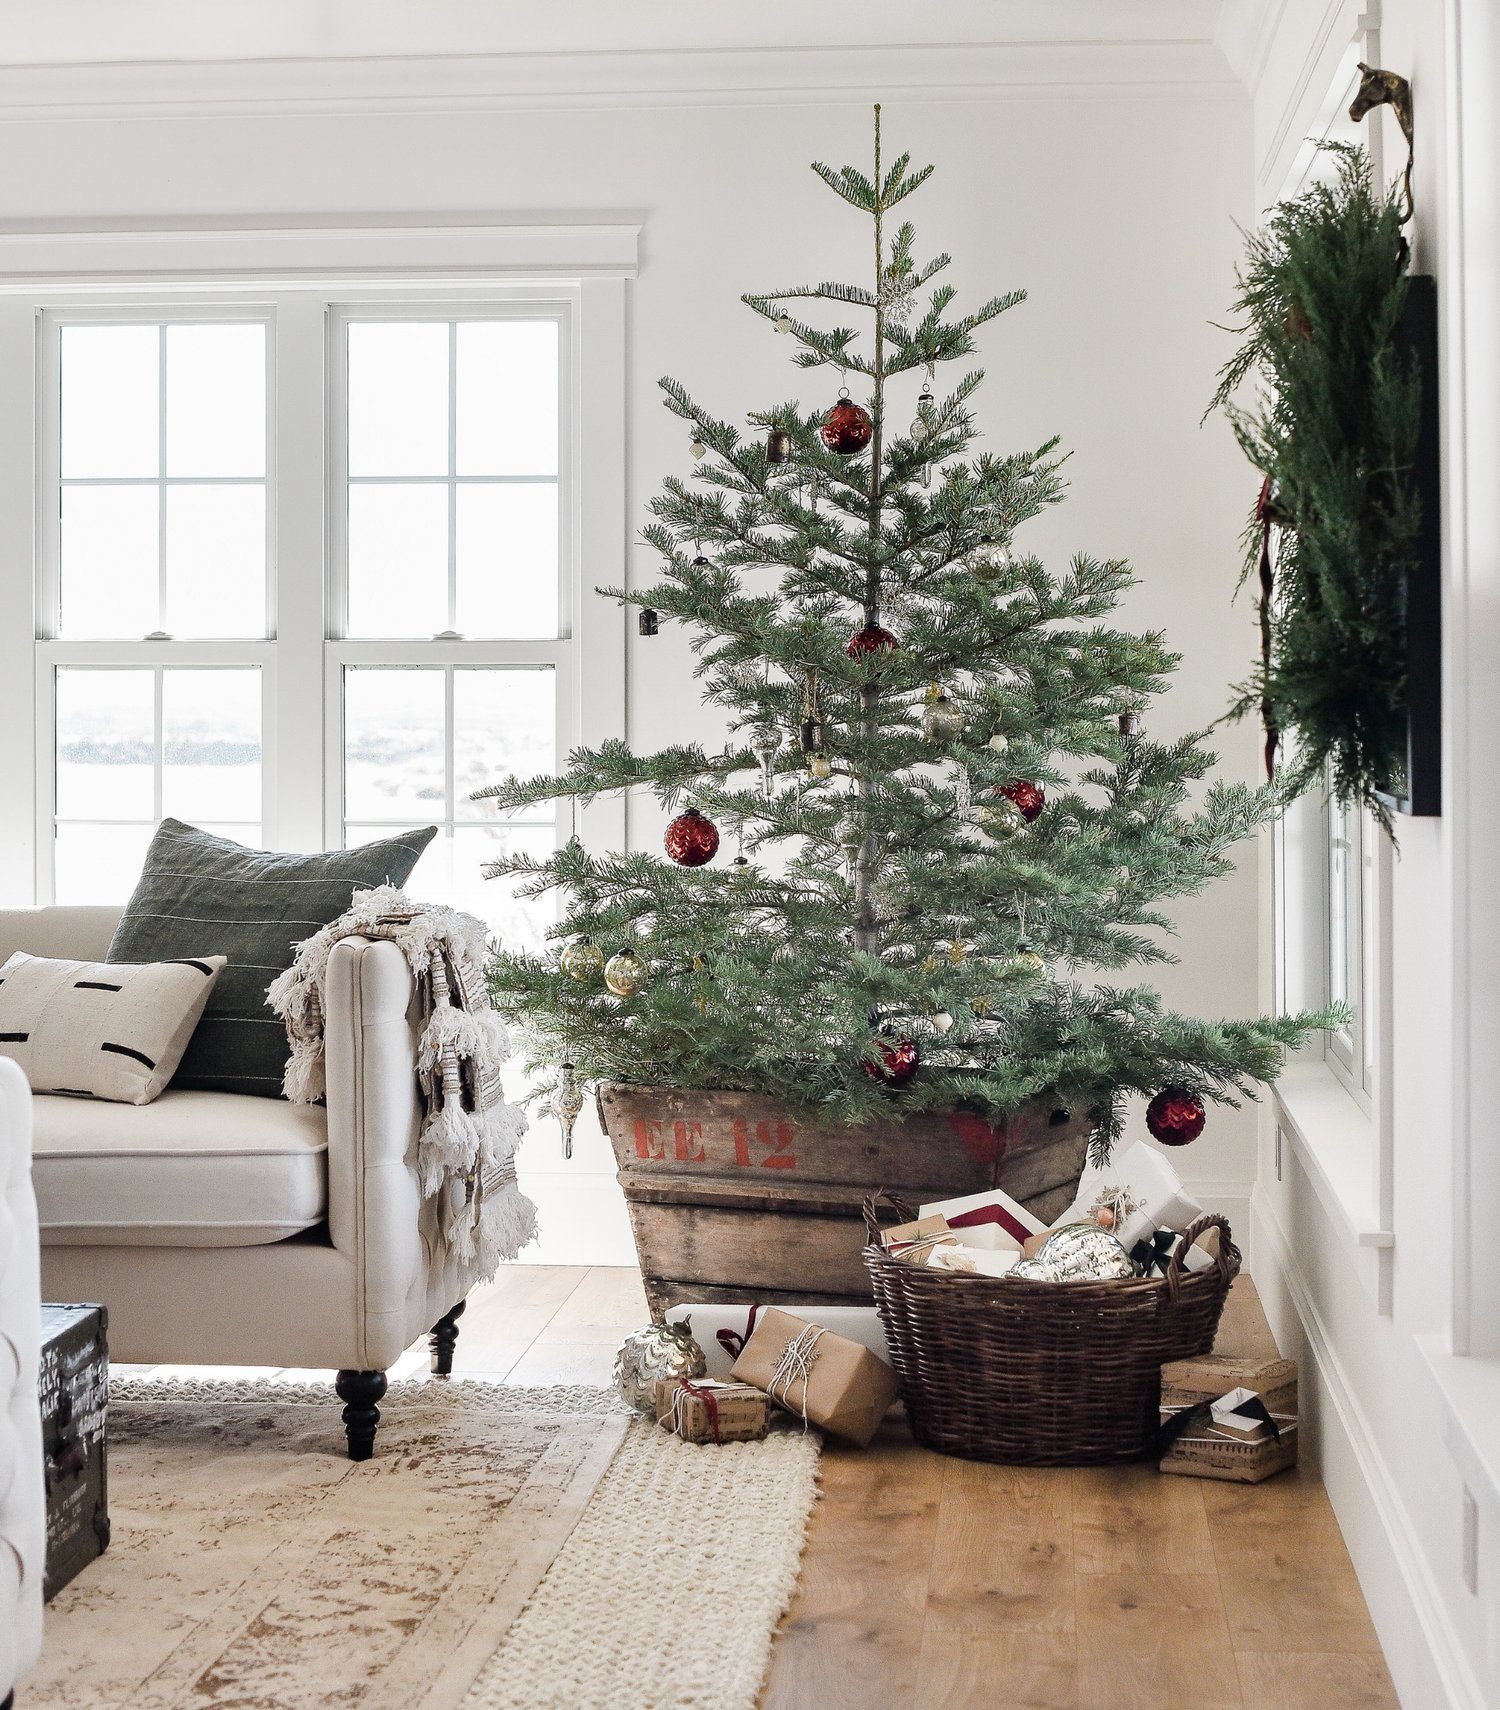 Farmhouse Christmas Decor: Living Room & Tree Ideas